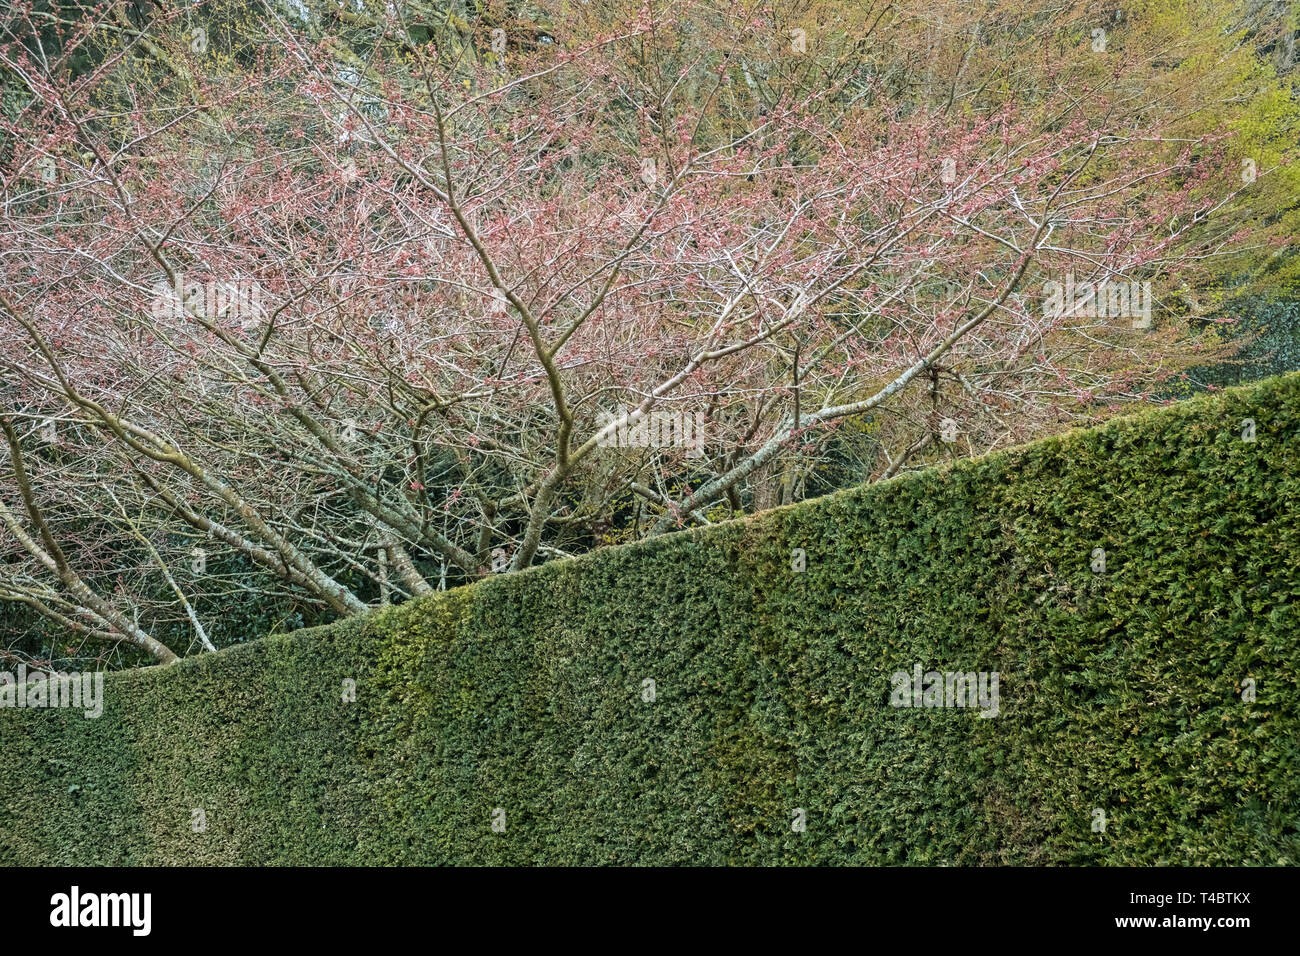 An example of clipped evergreen Yew hedging providing design and structure in a garden during winter and early spring months, April, England, UK - Stock Image